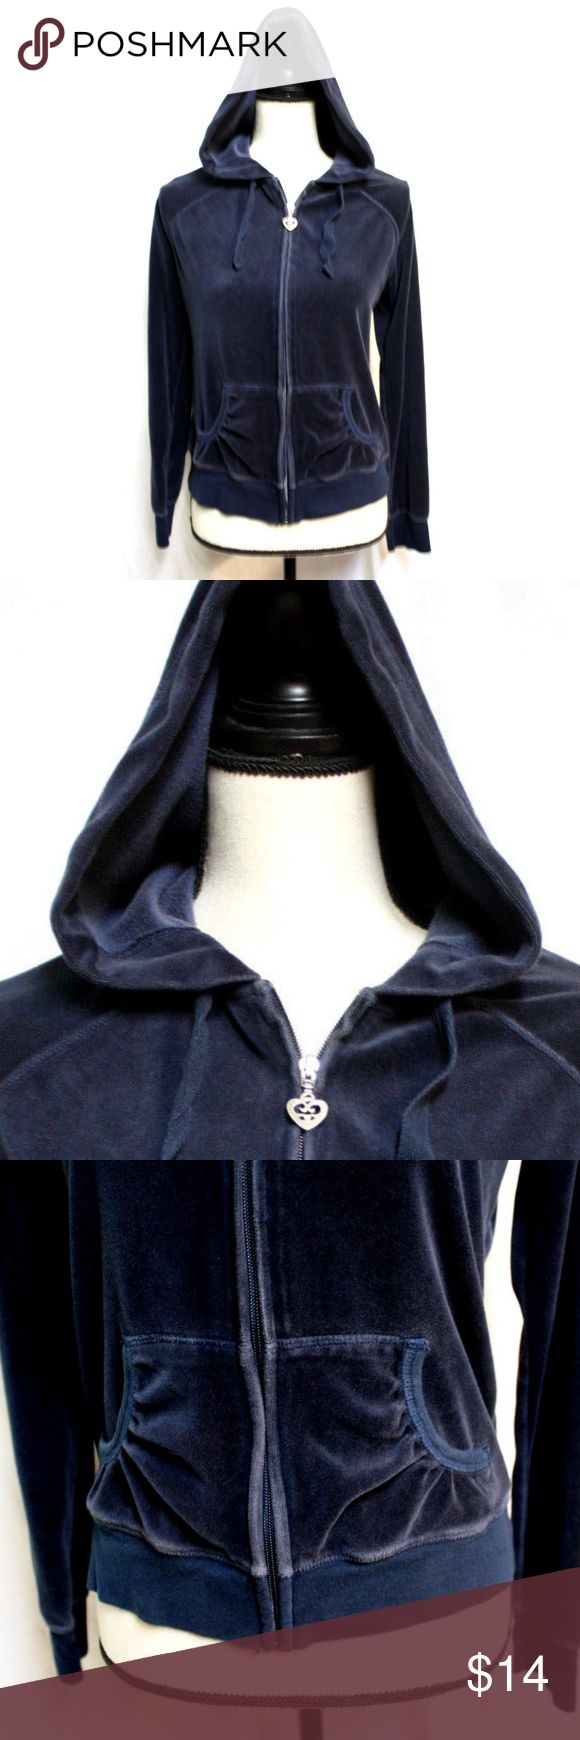 Old Navy Womens M Dark Blue Long Sleeved Hoodie Old Navy Intimates Womens Size Medium Dark Blue Velour Long Sleeved Hoodie.  Dark midnight blue fabric cotton blend fabric in a velour.   Hoodie has a drawstring, the kangaroo pockets have curved and gathered openings and the full length zipper has a heart shaped pull.  The hemline has a 2 1/4 inch ribbed binding and the cuffs have a 2 1/2 inch ribbing.  Flat lay measurements are:  Chest:     19 inches Sleeve:   28 inches (neck seam to cuff)…